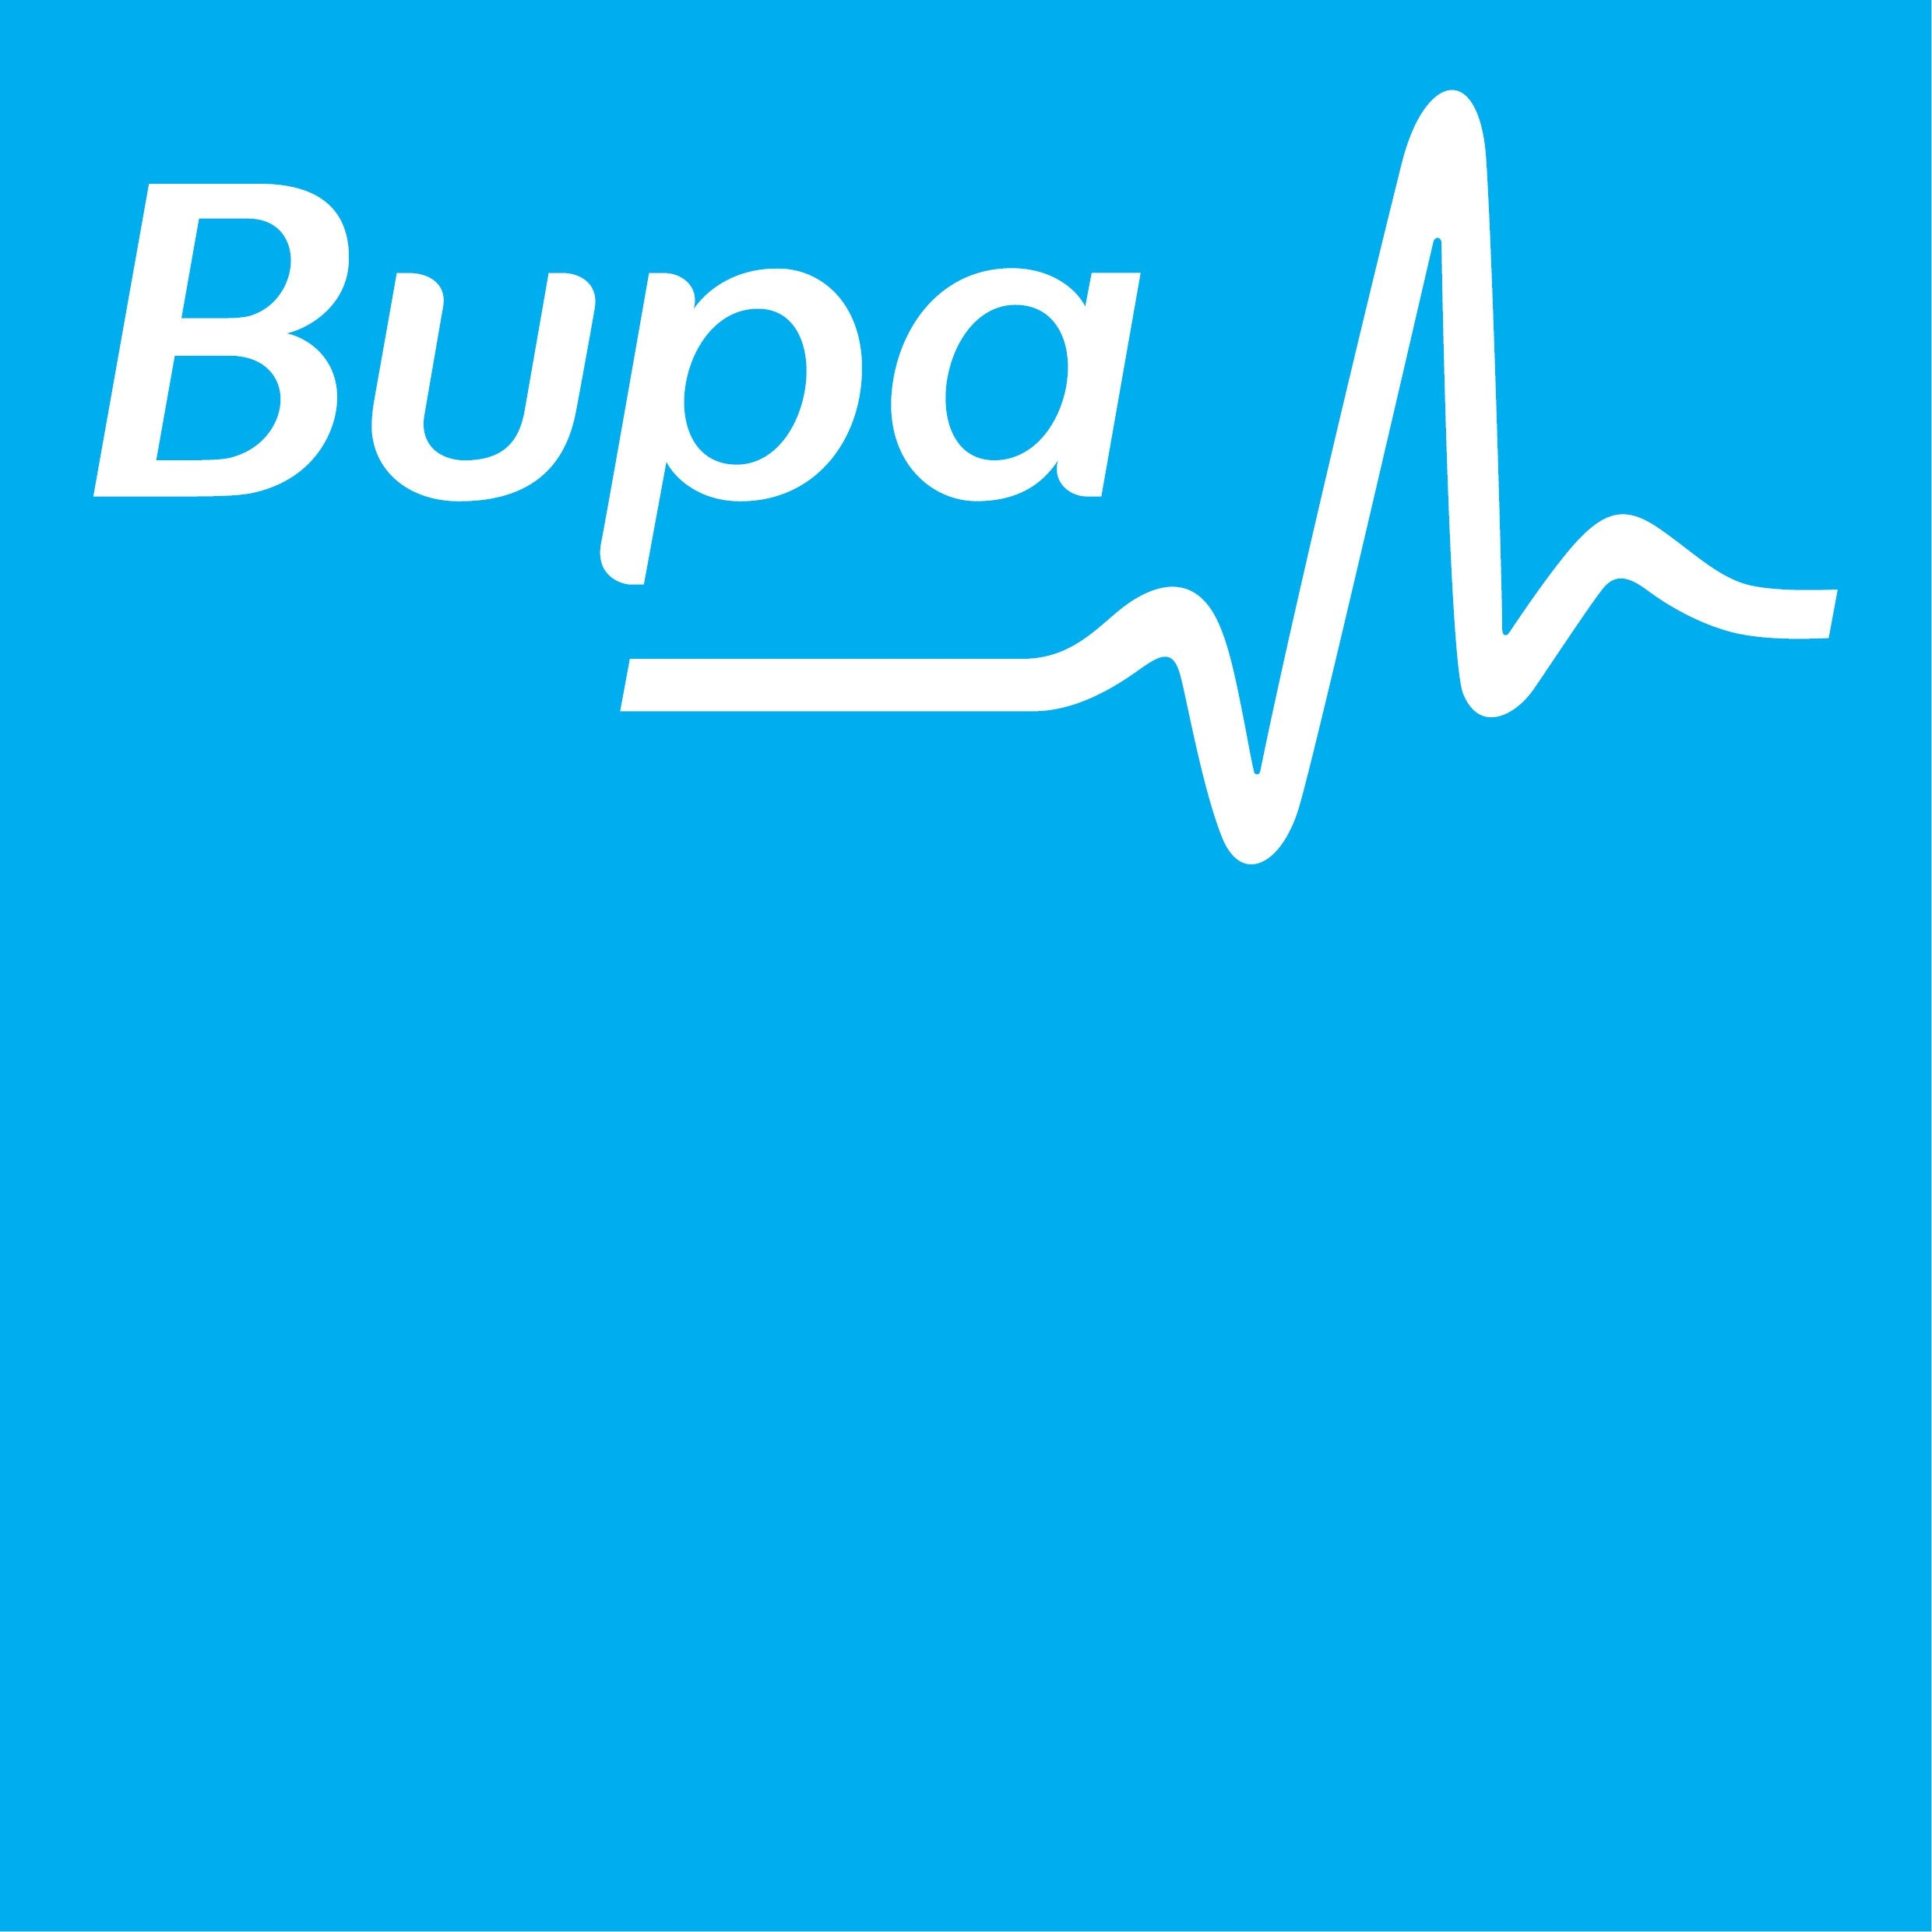 Bupa Seaforth logo